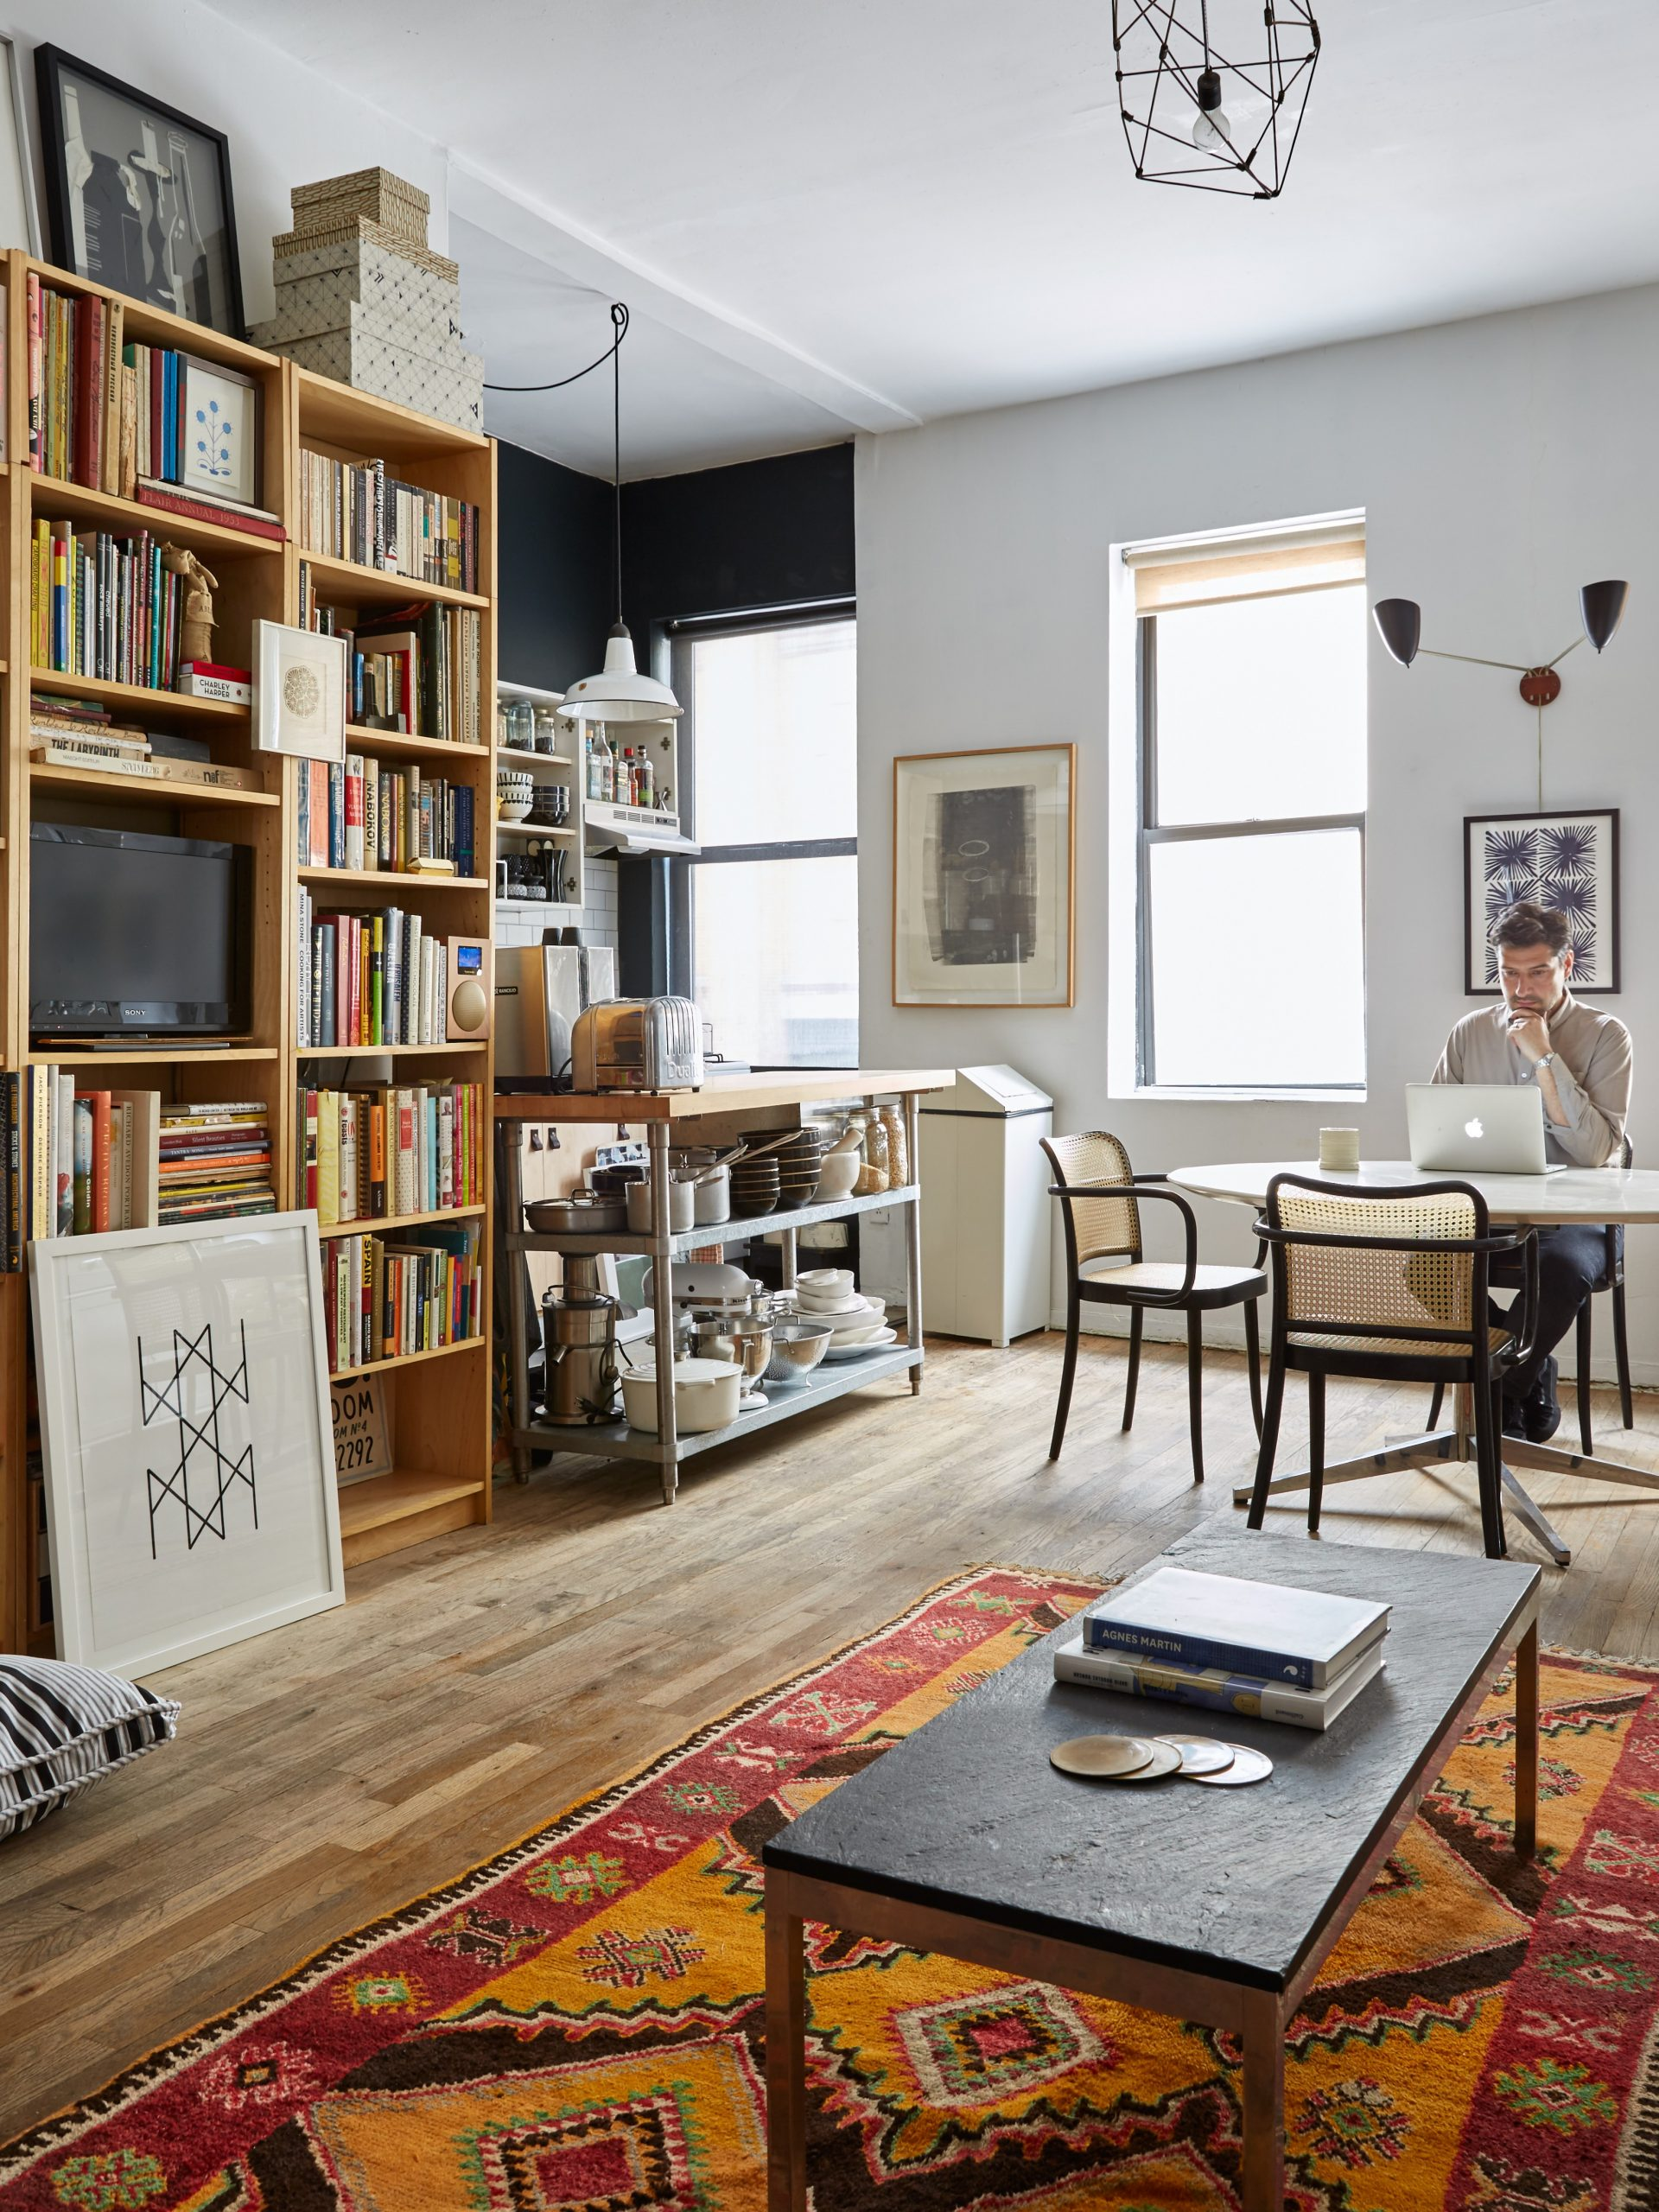 Small-Space Solutions: 10 Affordable Tips from an NYC Creative  - Apartment Design Nyc